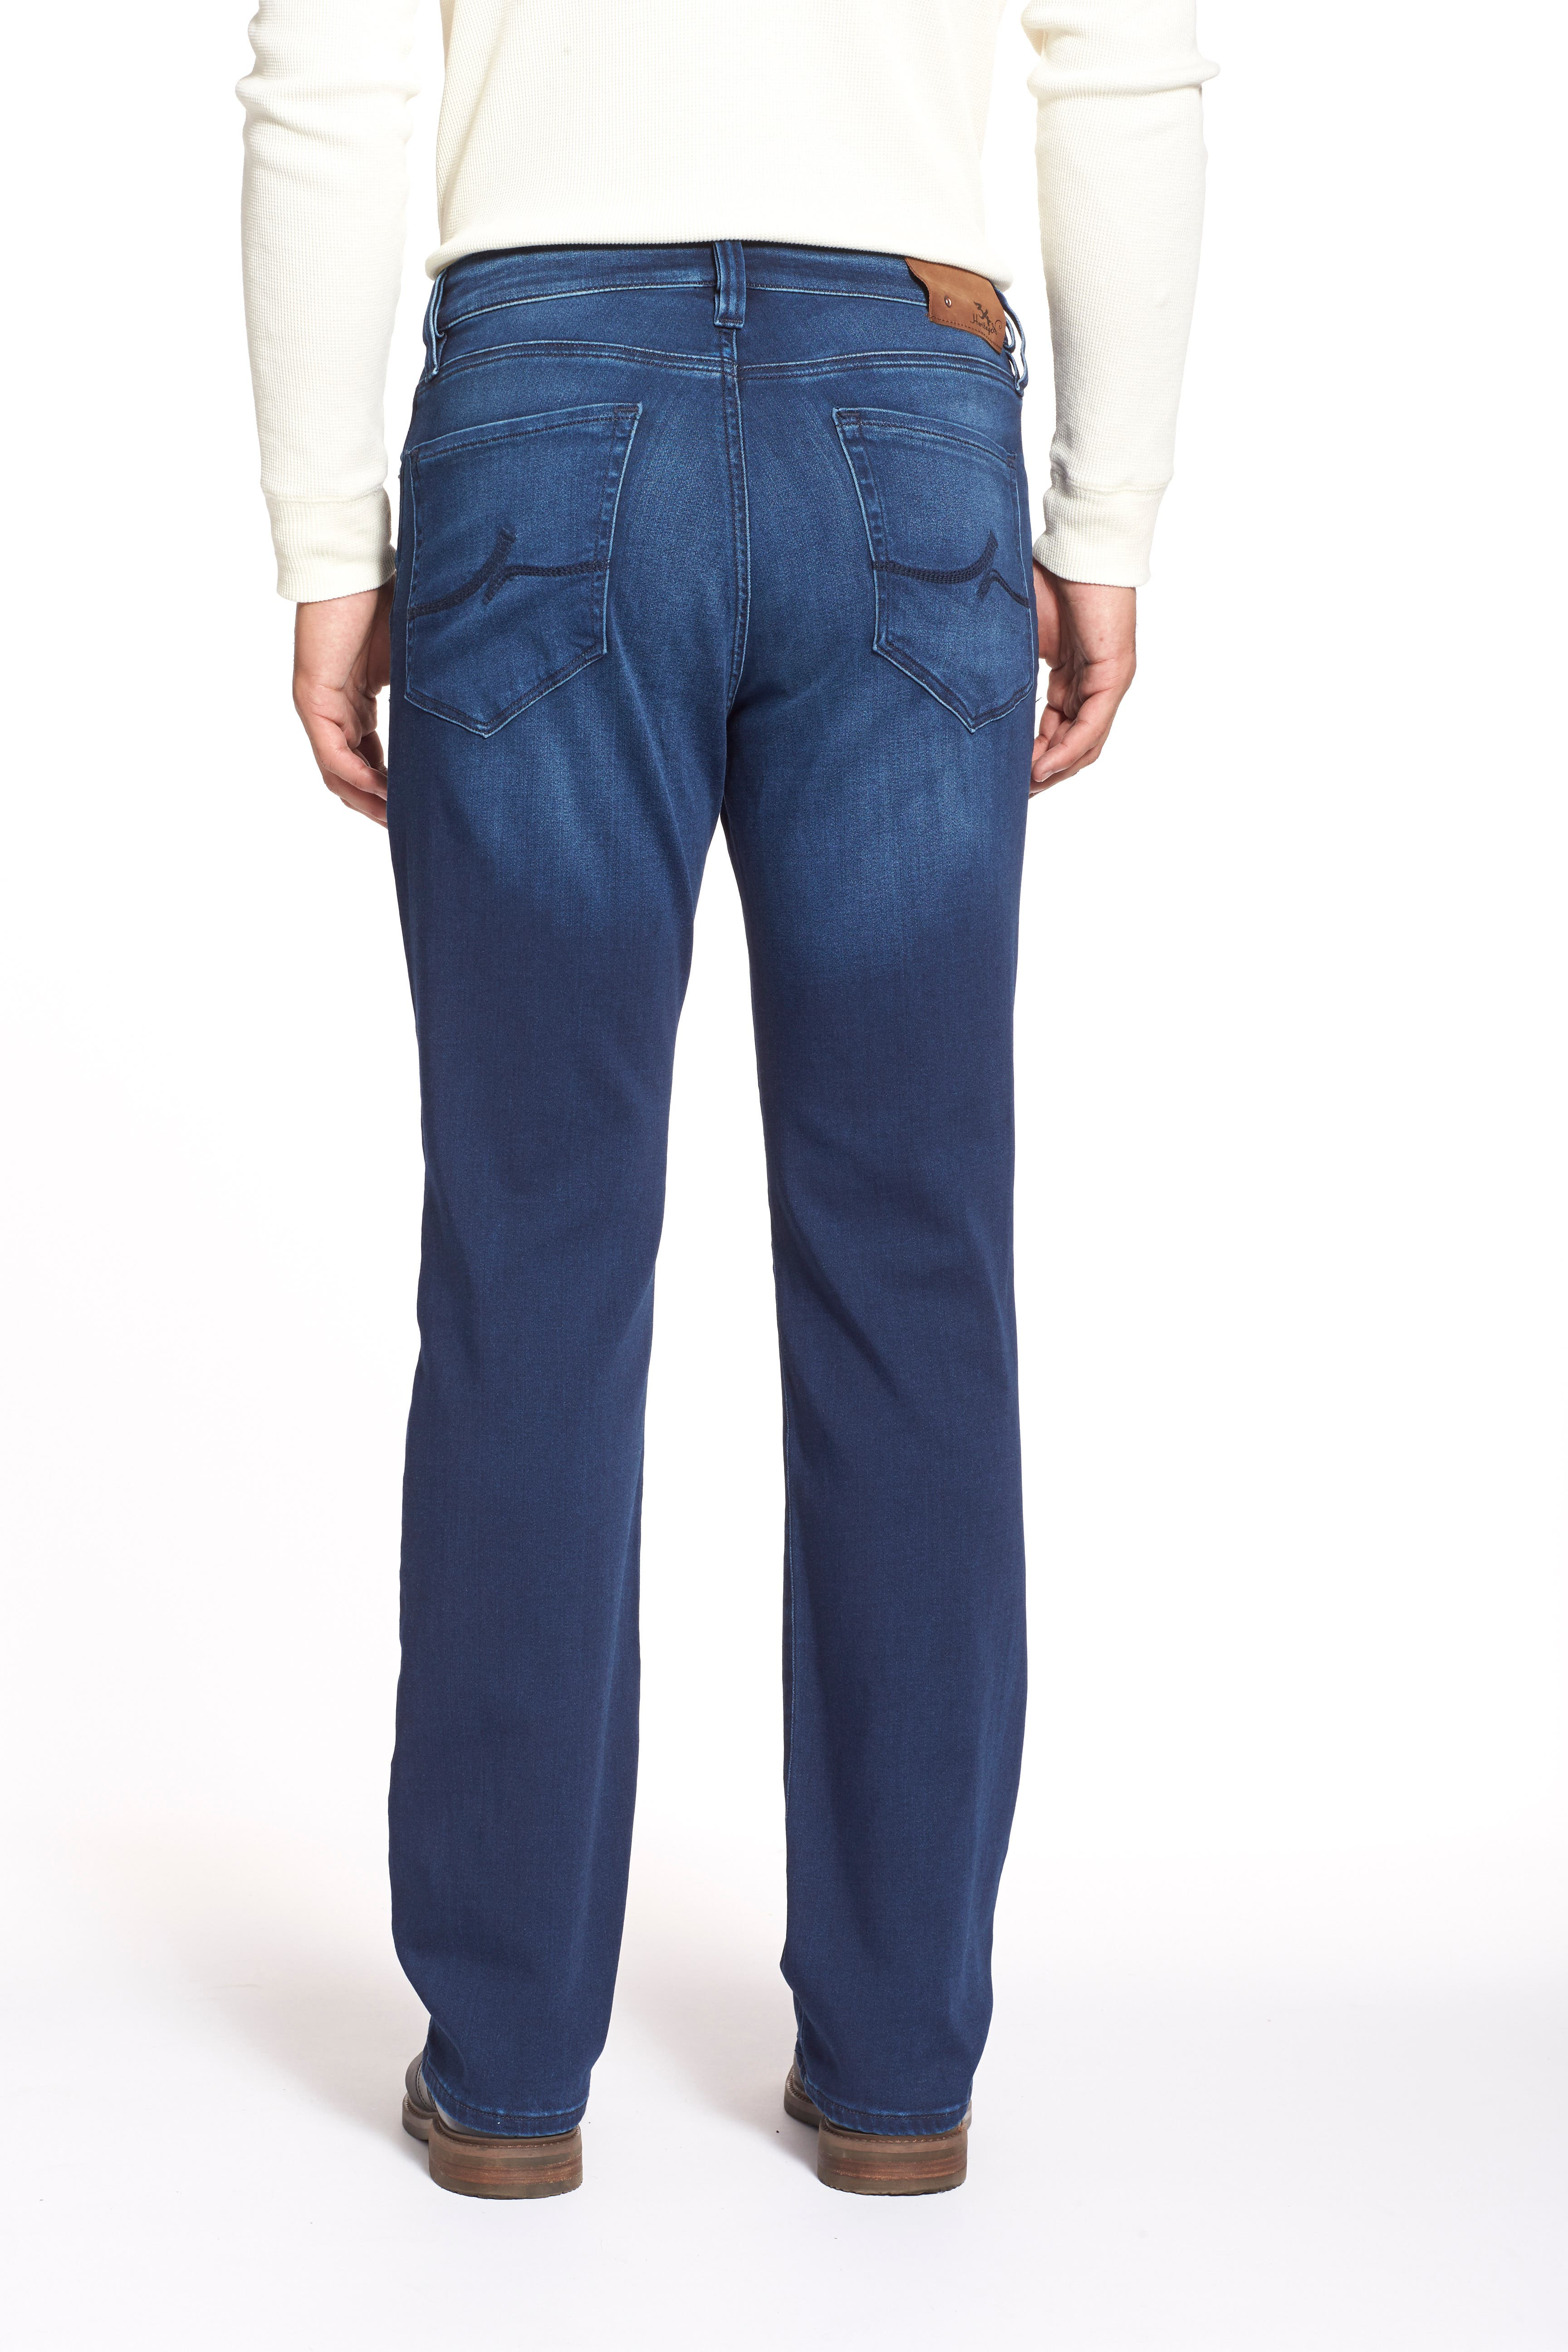 'Charisma' Relaxed Fit Jeans,                             Alternate thumbnail 6, color,                             401